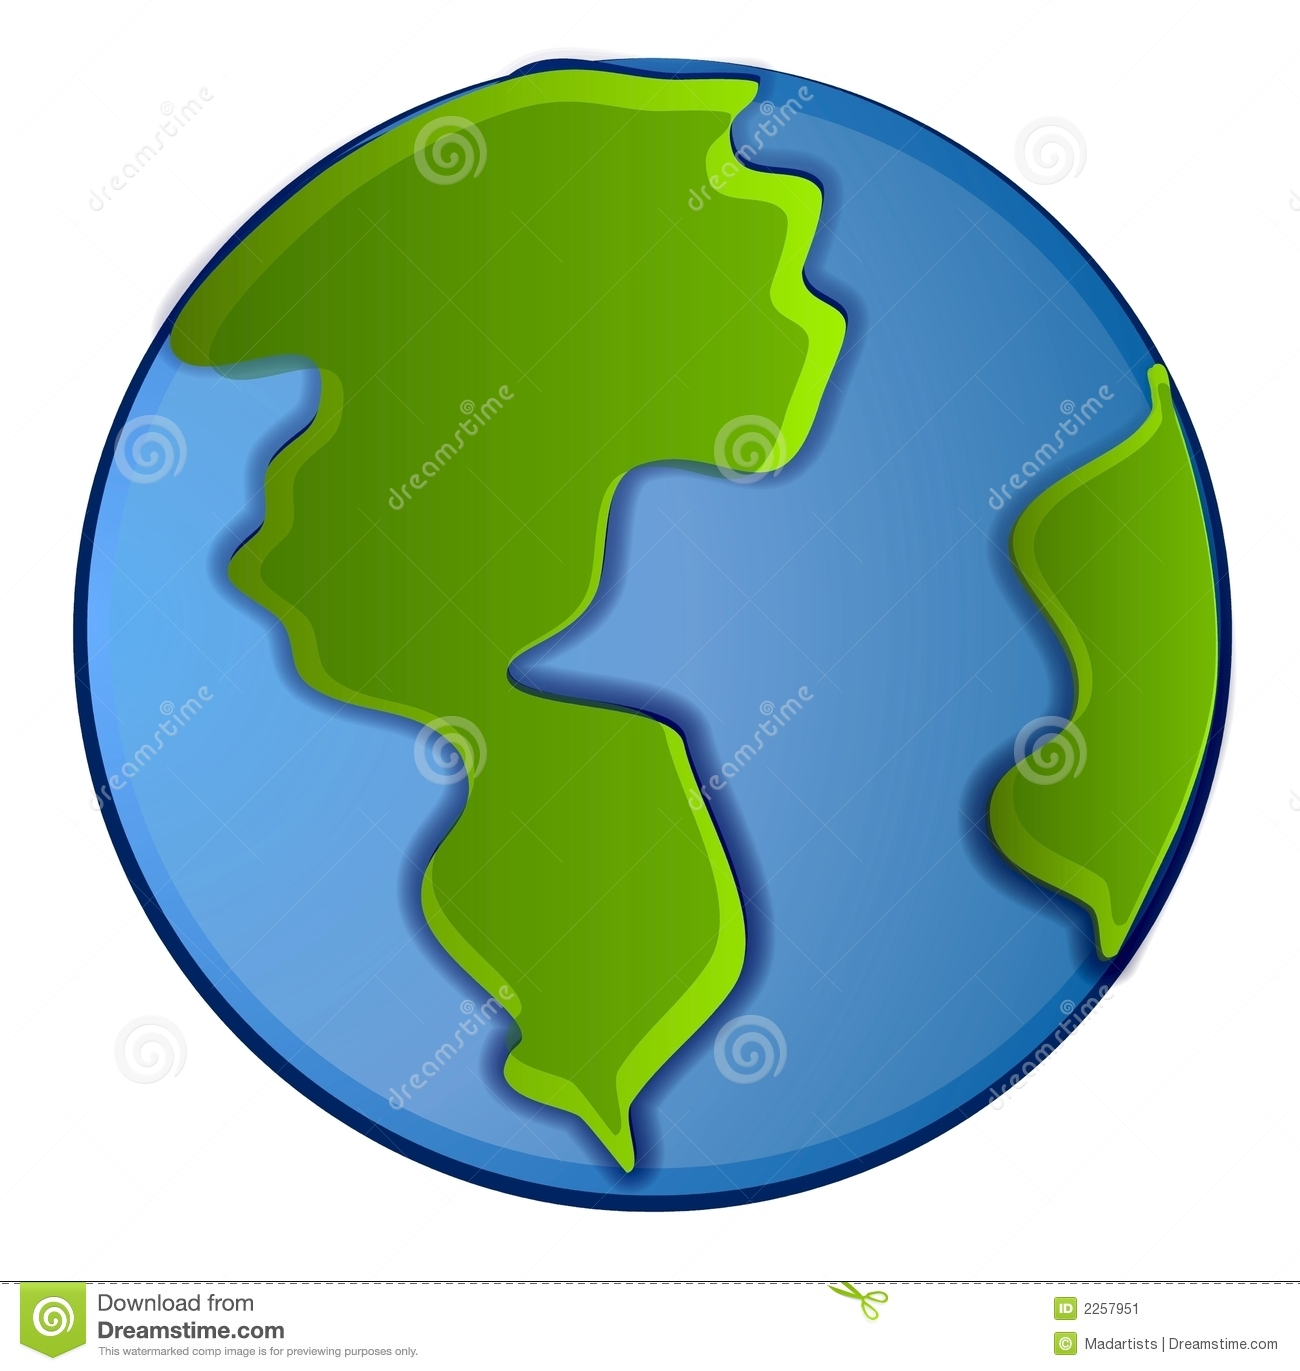 Planet Clipart Isolated Planet Earth Clip Art